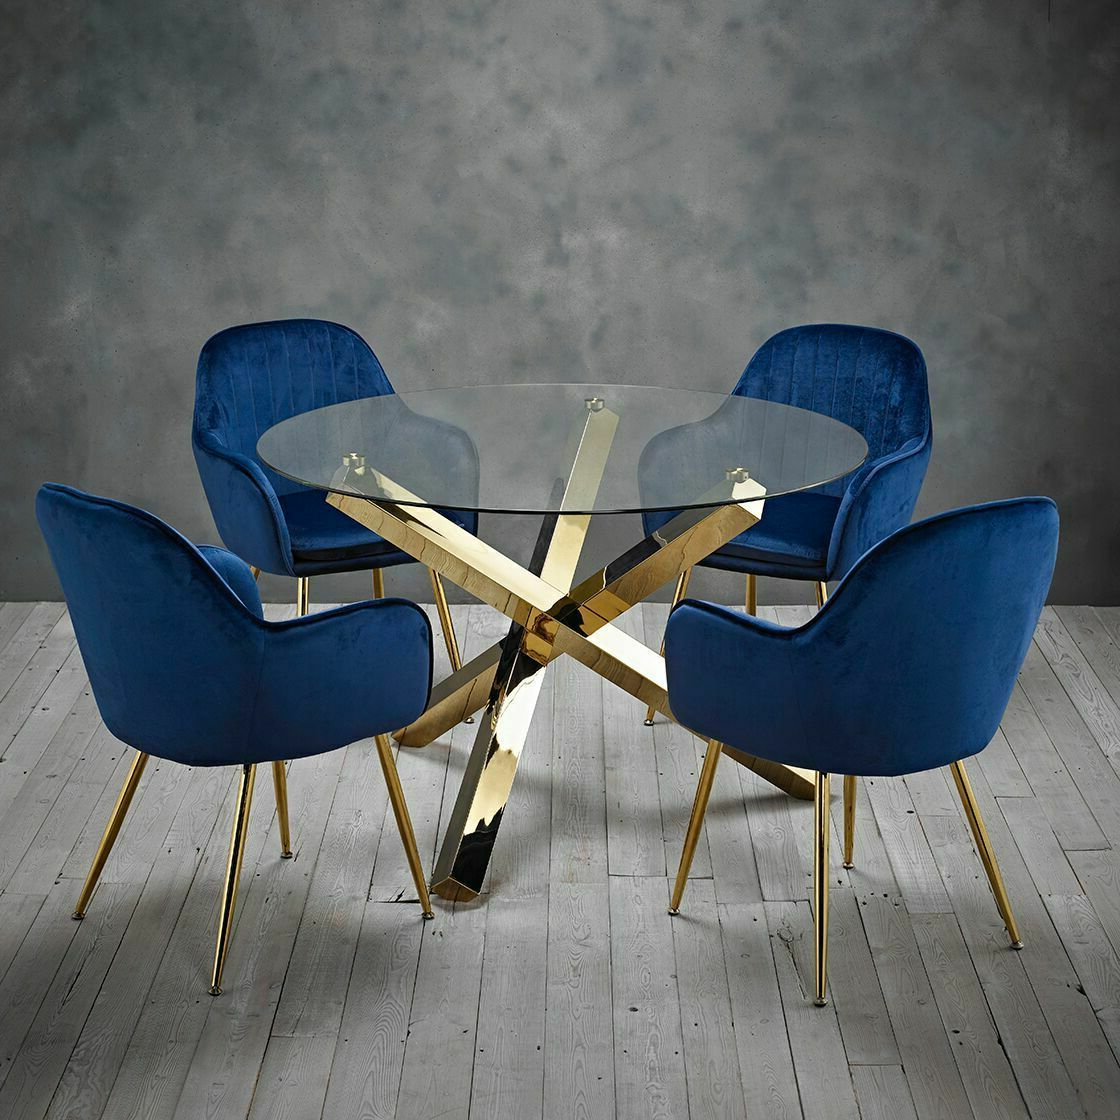 2017 Modern Polished Gold Round Clear Glass Dining Table Throughout Modern Gold Dining Tables With Clear Glass (View 20 of 30)